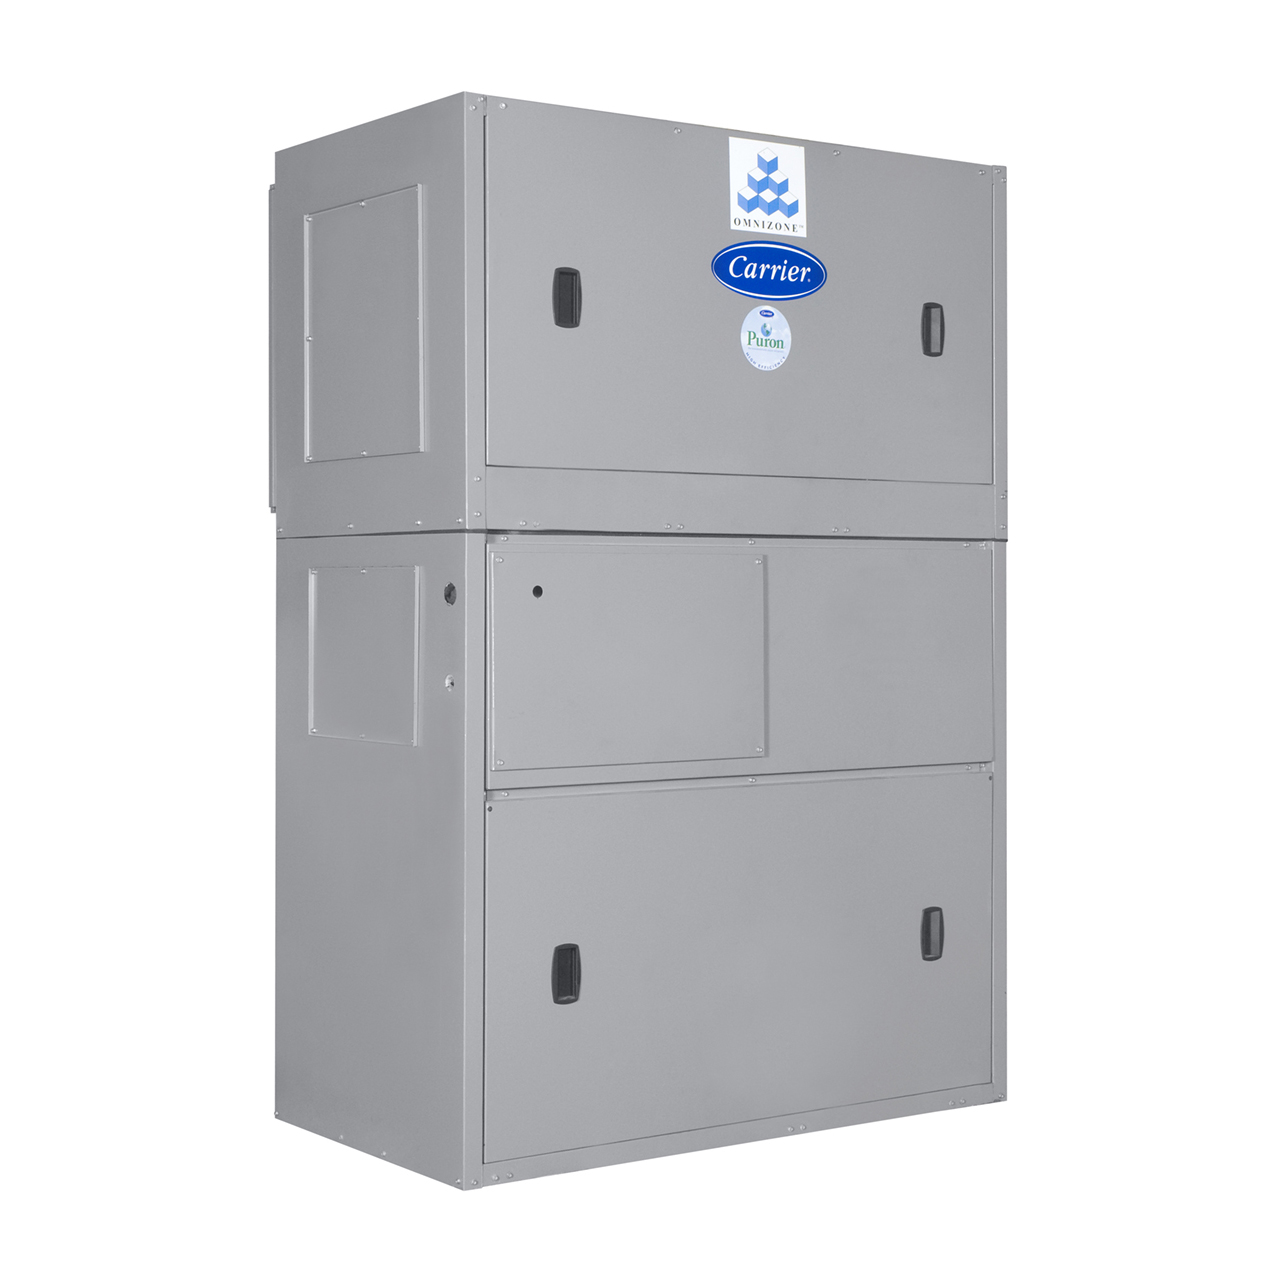 carrier-50xc-indoor-self-contained-unit